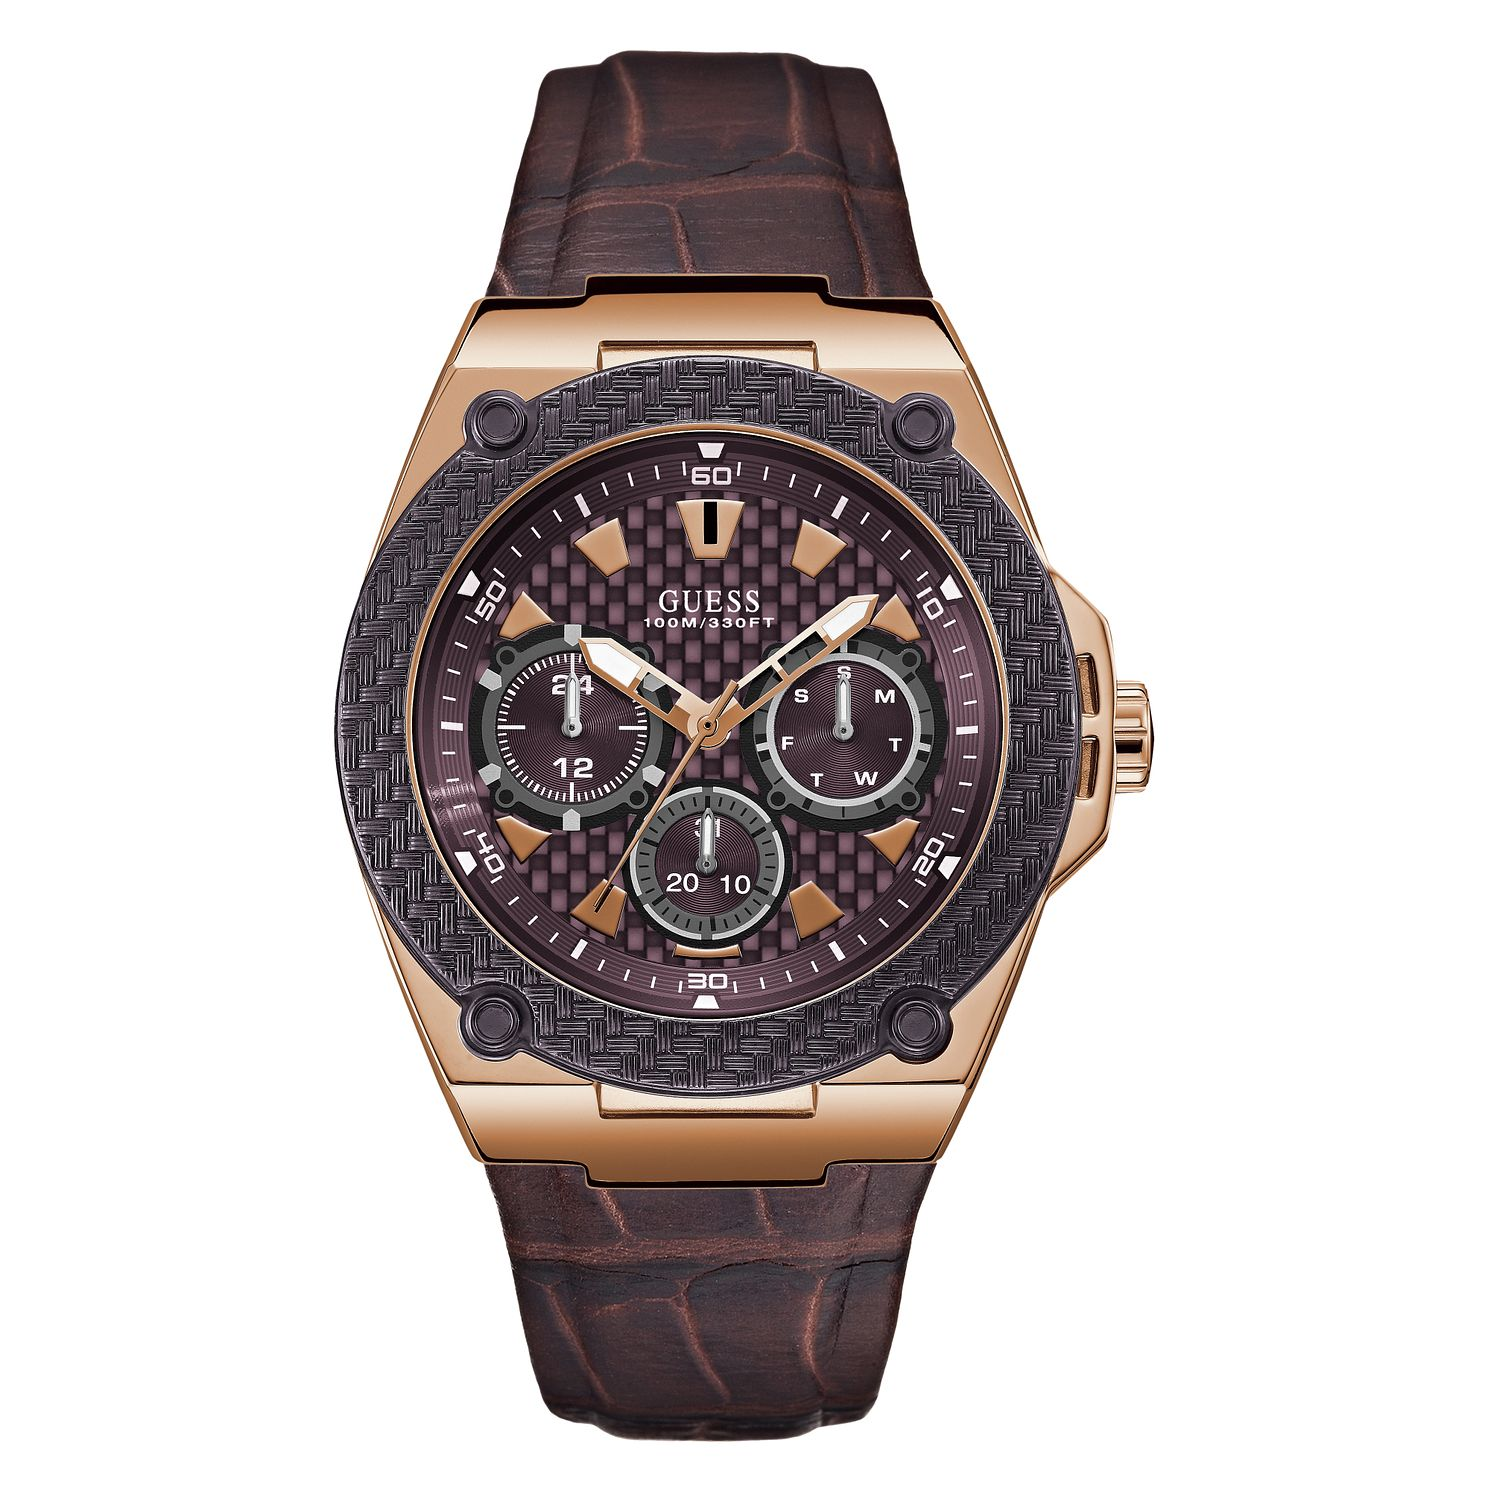 Guess Legacy Men's Brown Leather Strap Watch - Product number 5870569